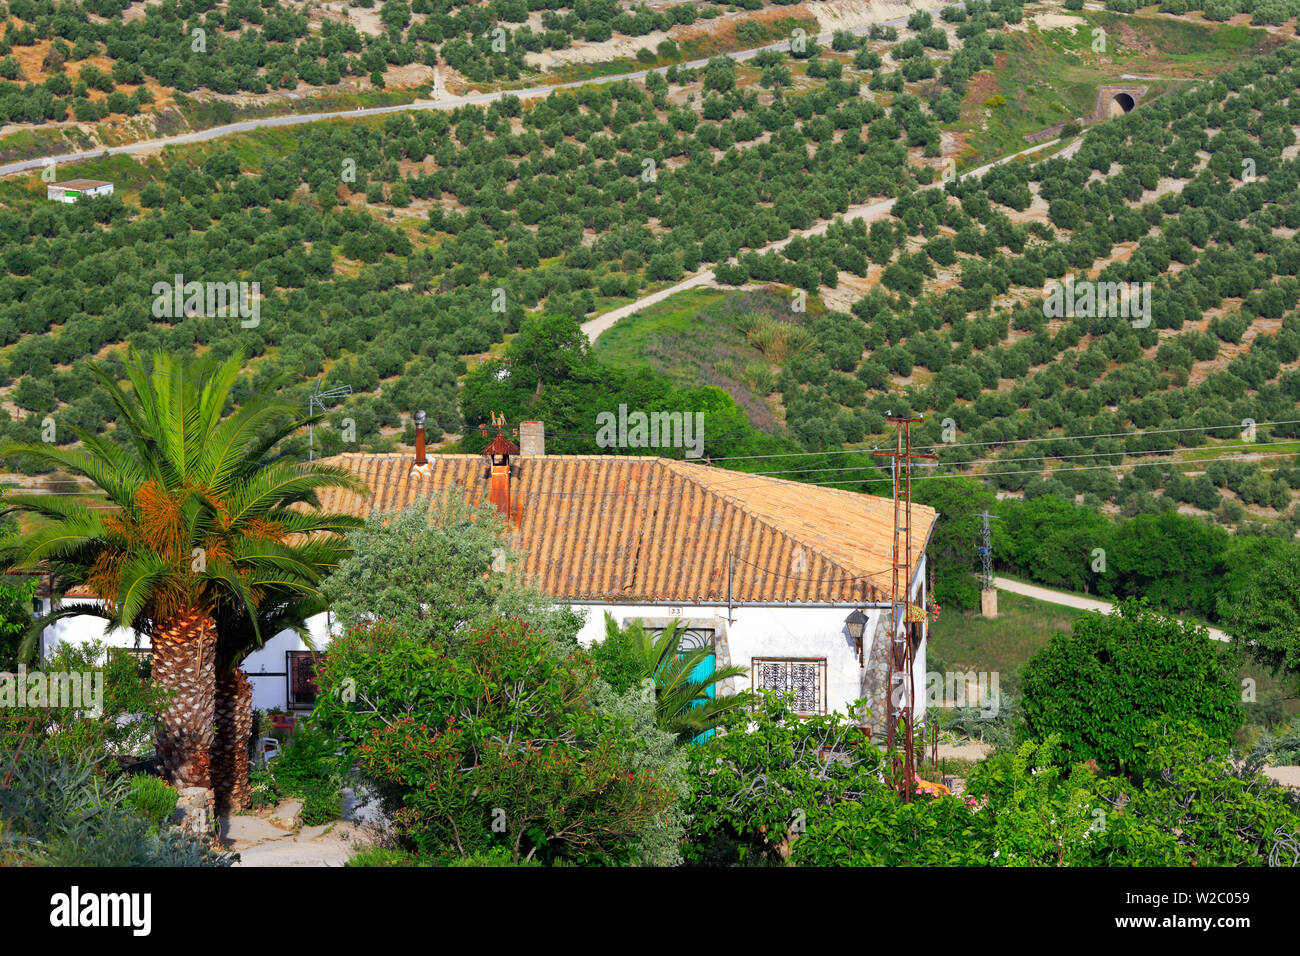 Landscape, olive groves from the Plaza Santa Lucia, Ubeda, Andalusia, Spain Stock Photo